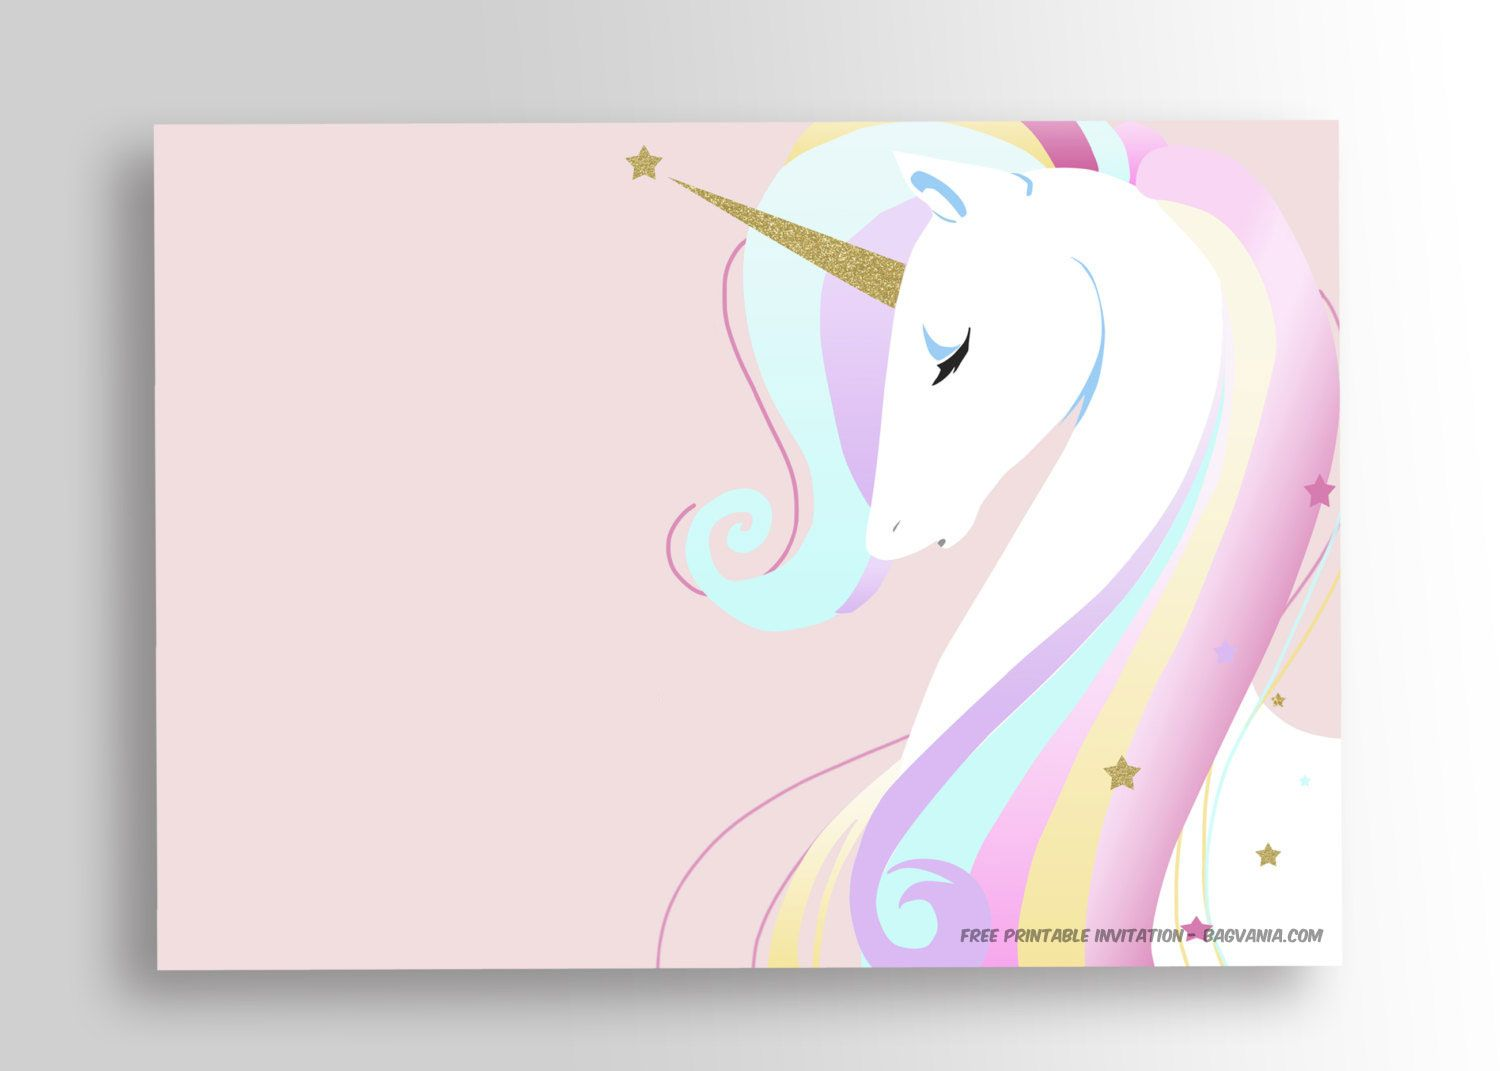 Tile Print For Pin The Horn On Unicorn Free FREE Printable Golden Birthday Invitation Template